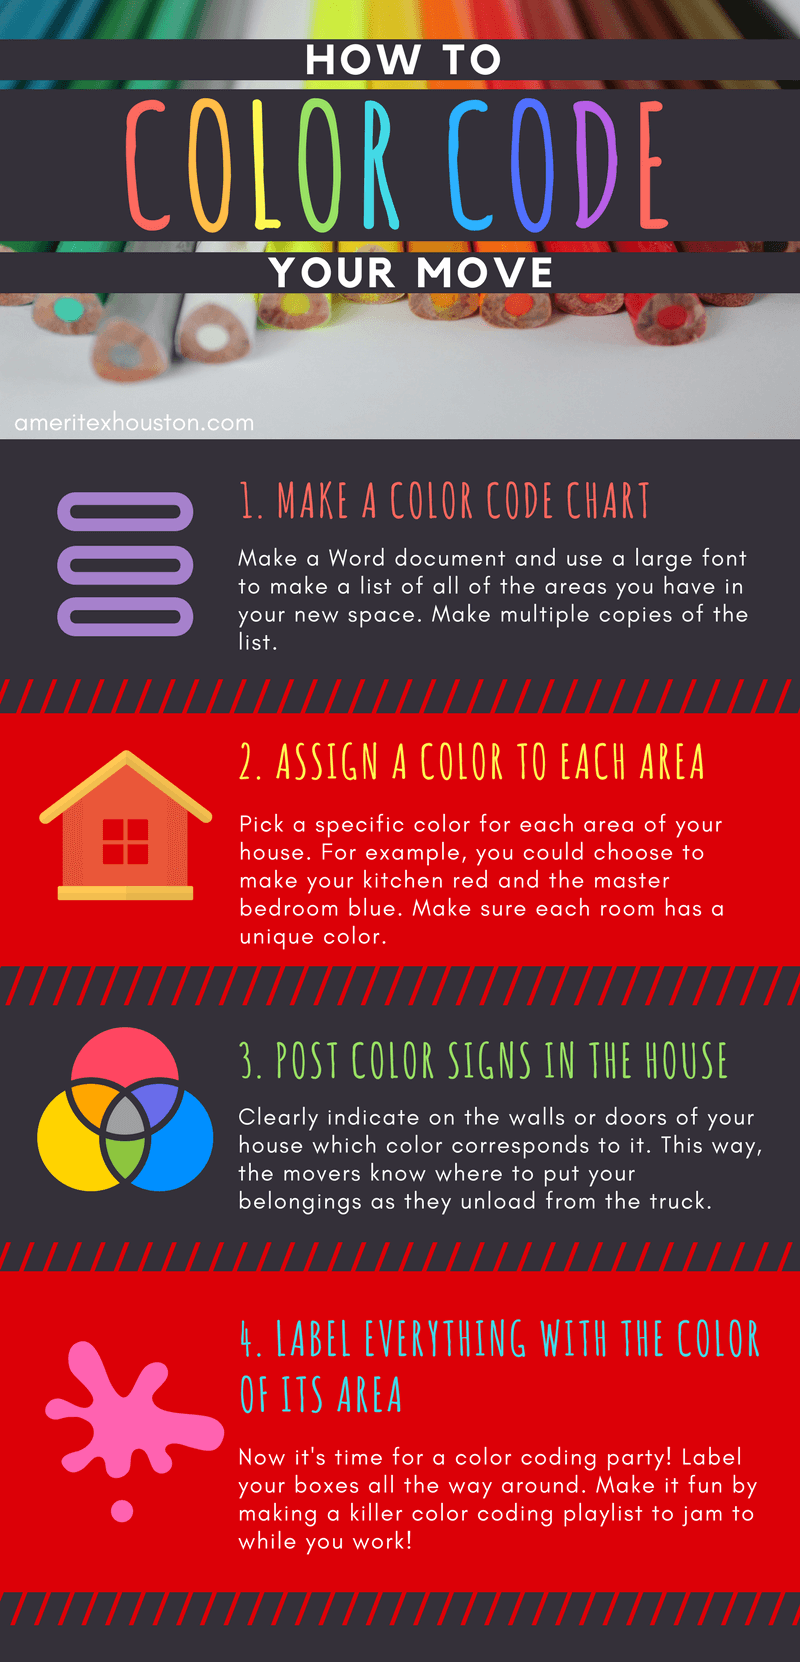 how to color code your move